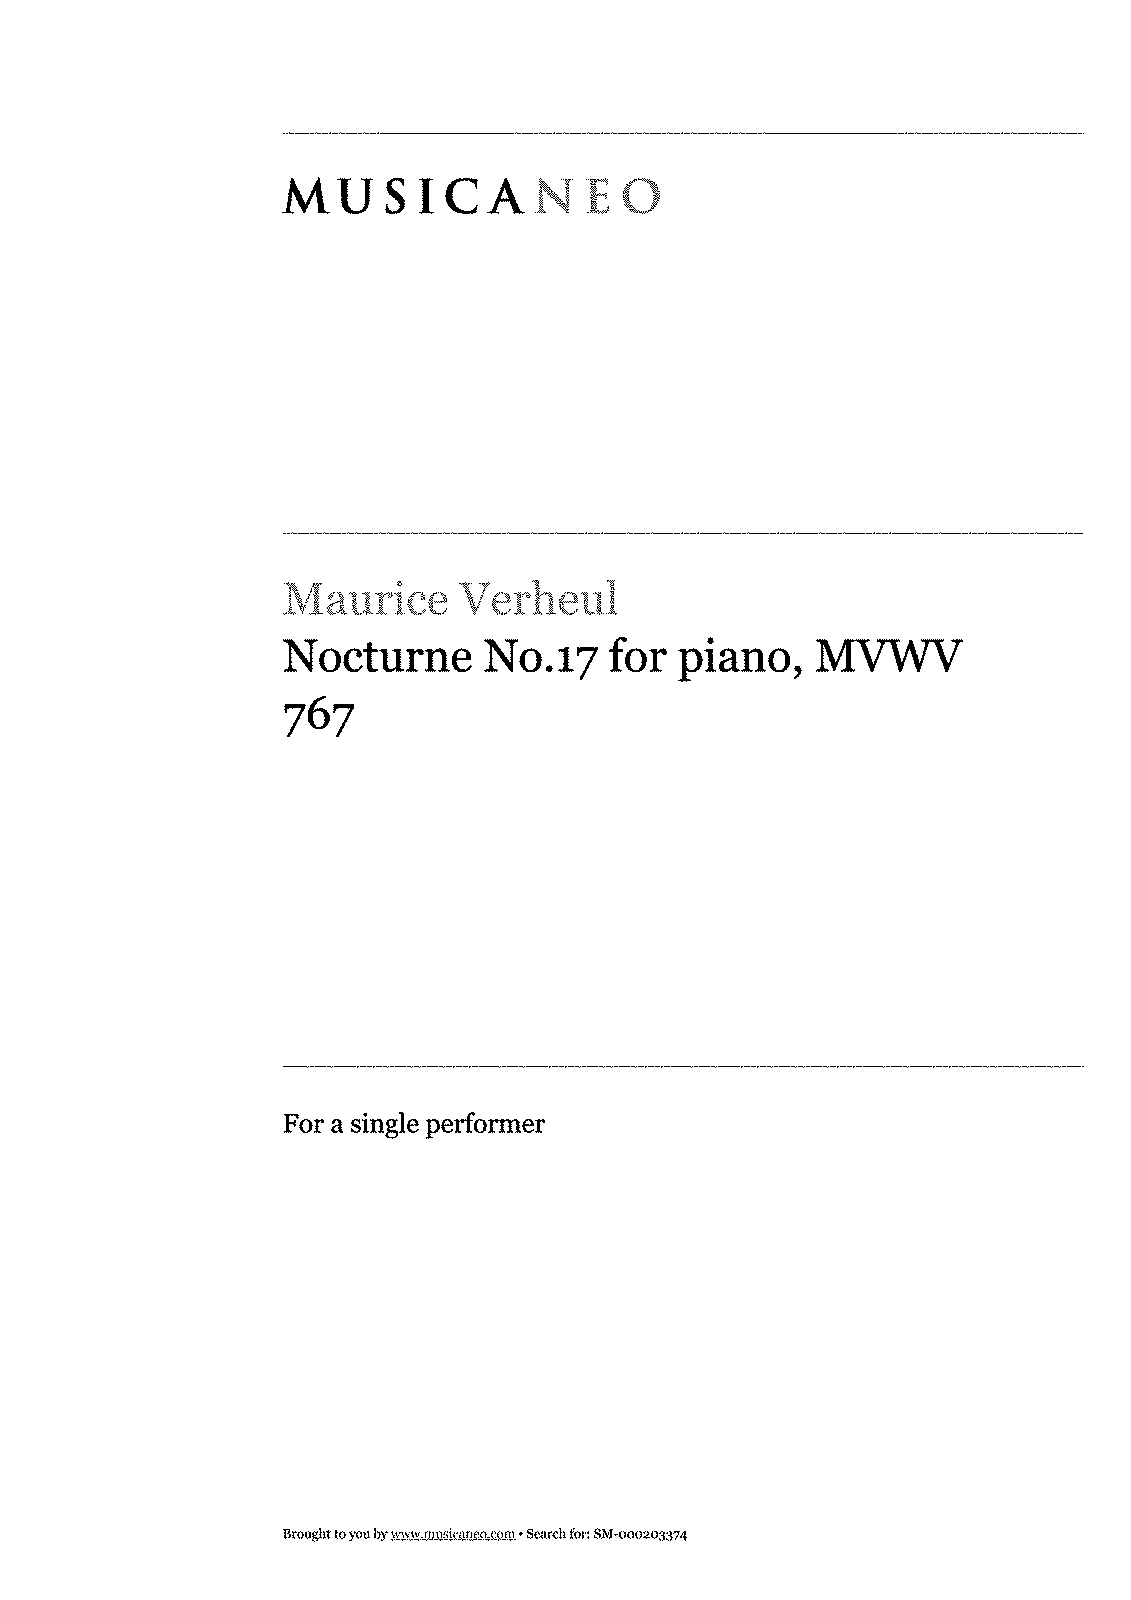 PMLP716947-nocturne no 17 for piano mvwv 767-1.pdf